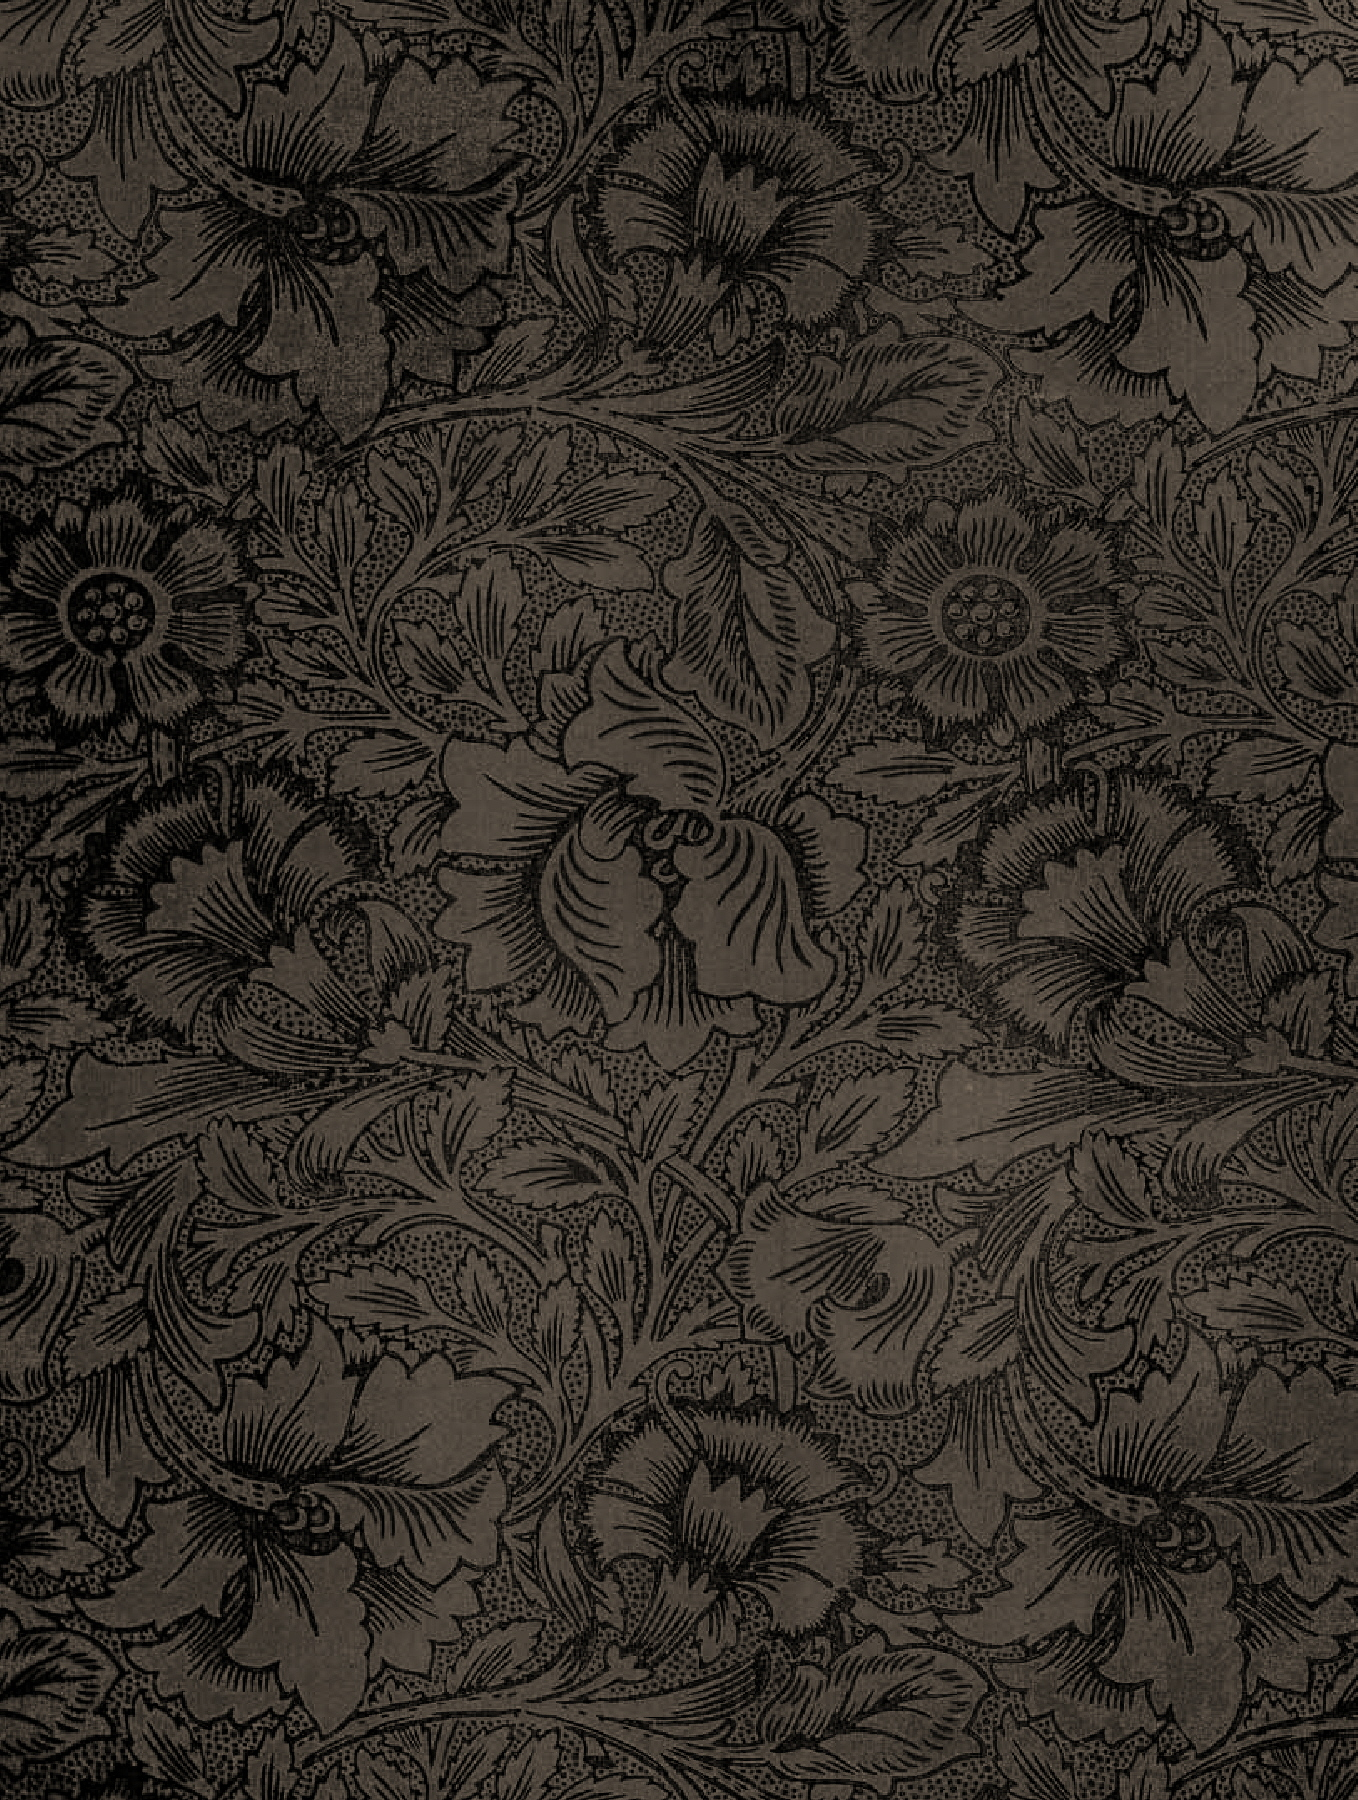 Vintage wall paper texture by mgb stock on deviantart for Wall to wall paper